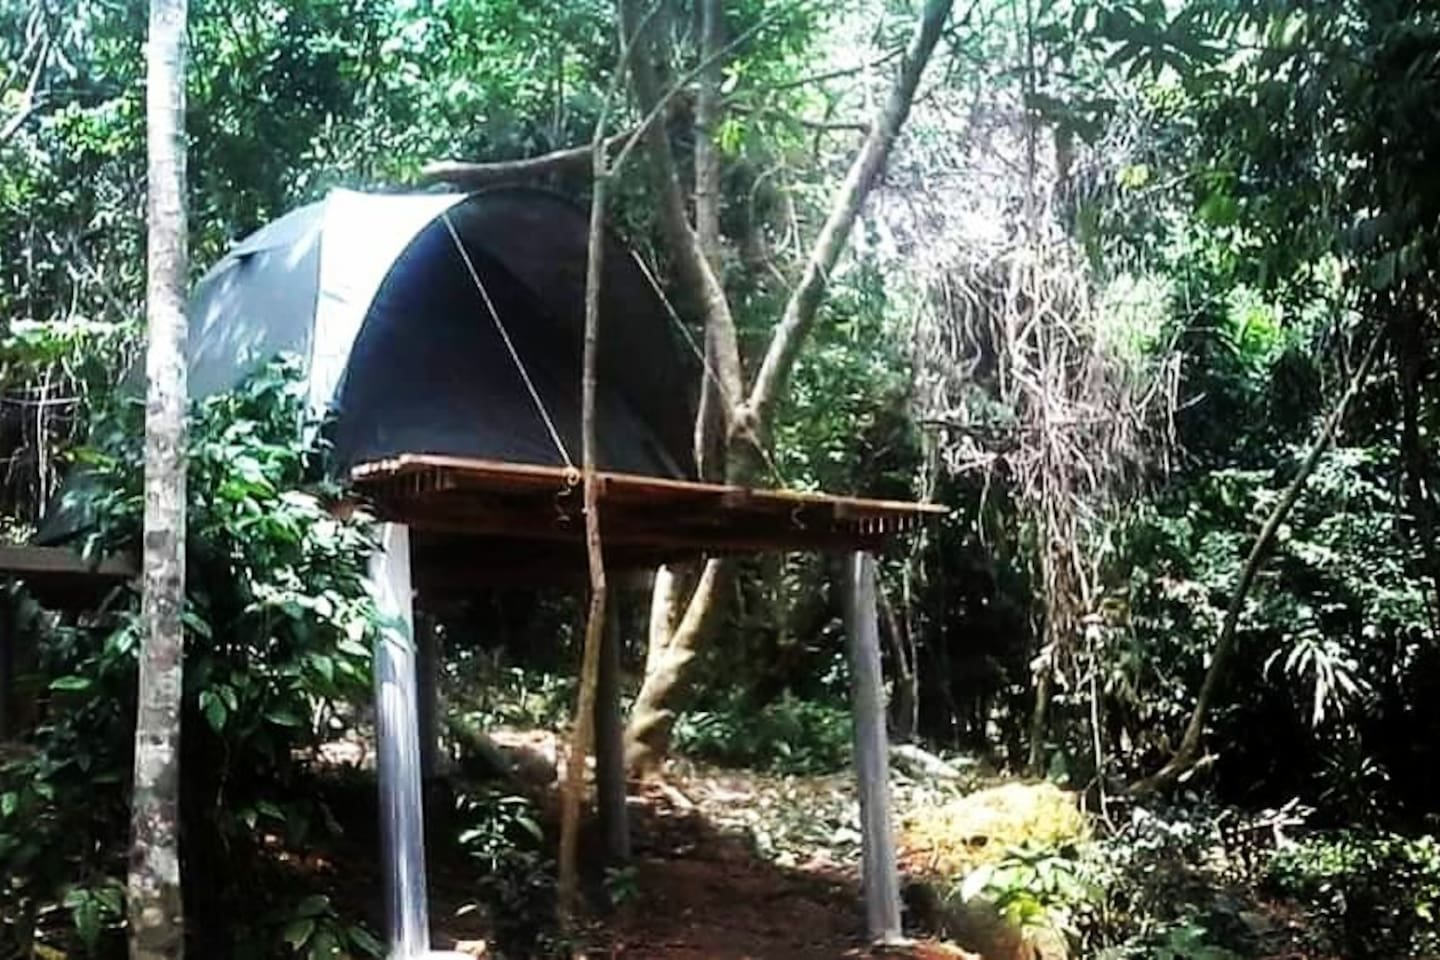 Island jungle camping at RainForest Camping Perhentian Island, Pulau Perhentian Kecil, Malaysia